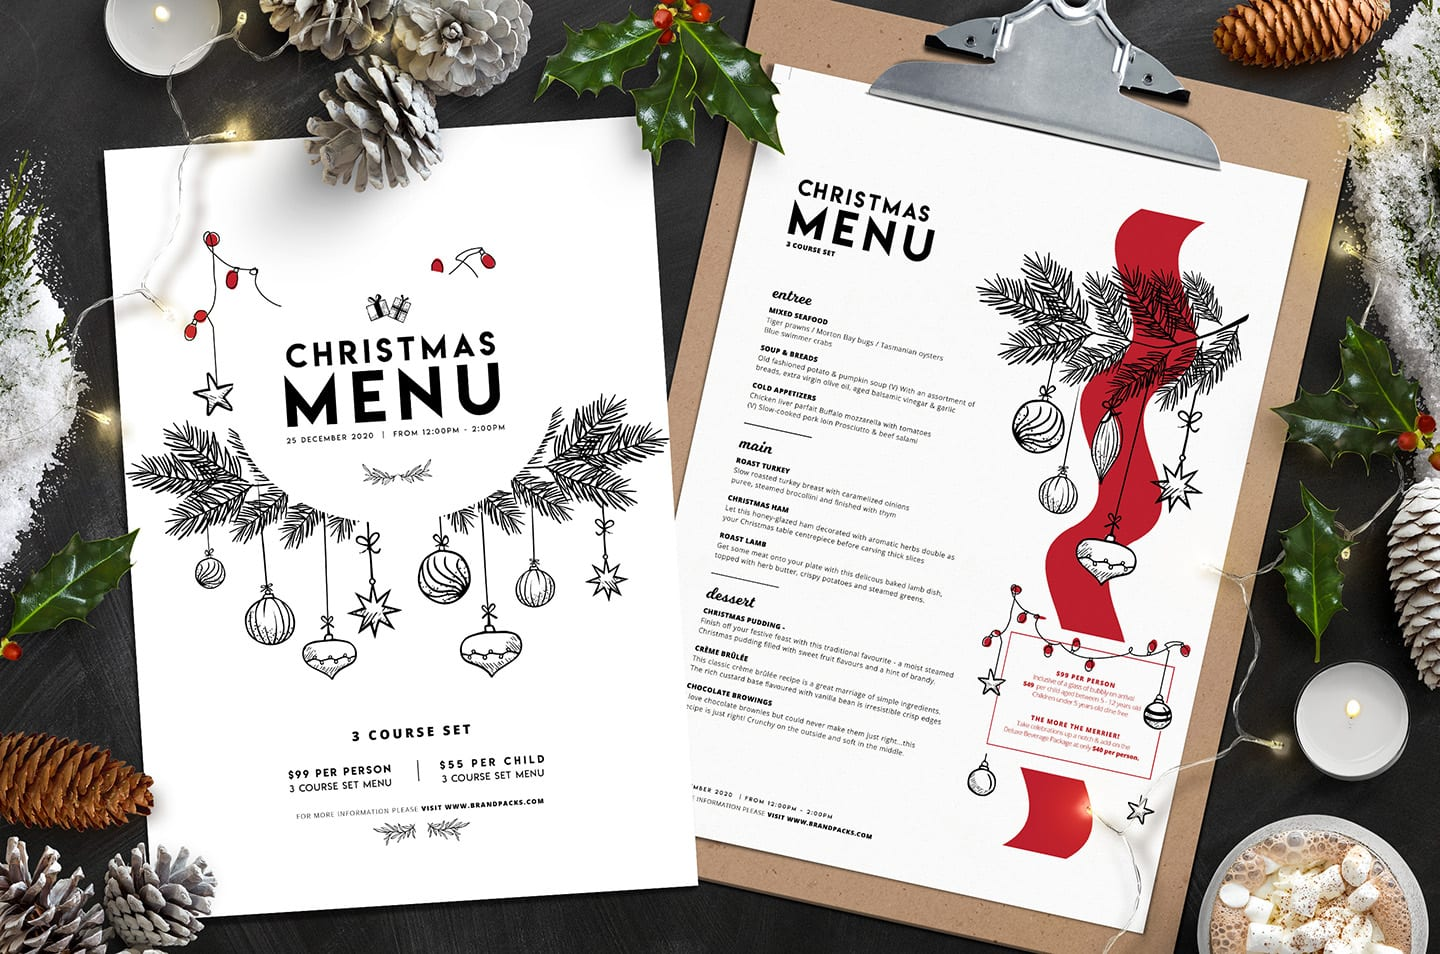 Tavola Drink Menu Christmas Menu Template Vol.3 - Brandpacks